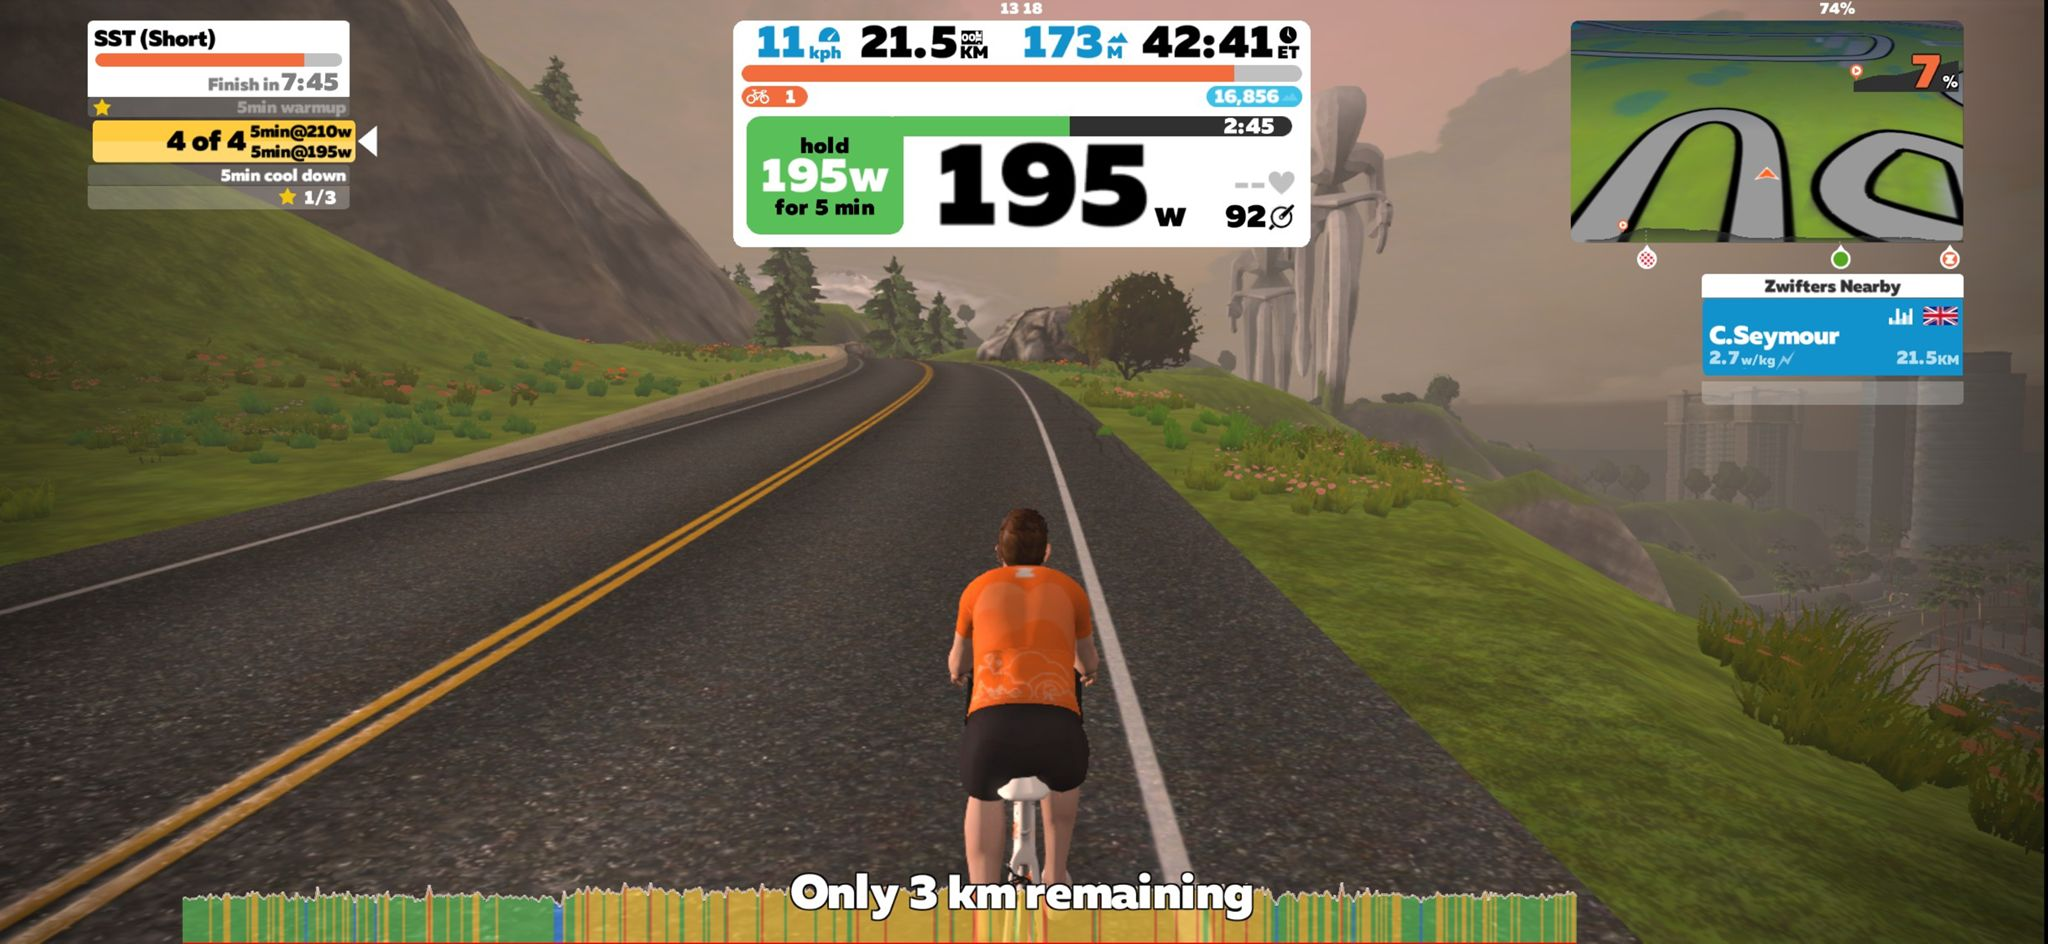 My first Zwift ride